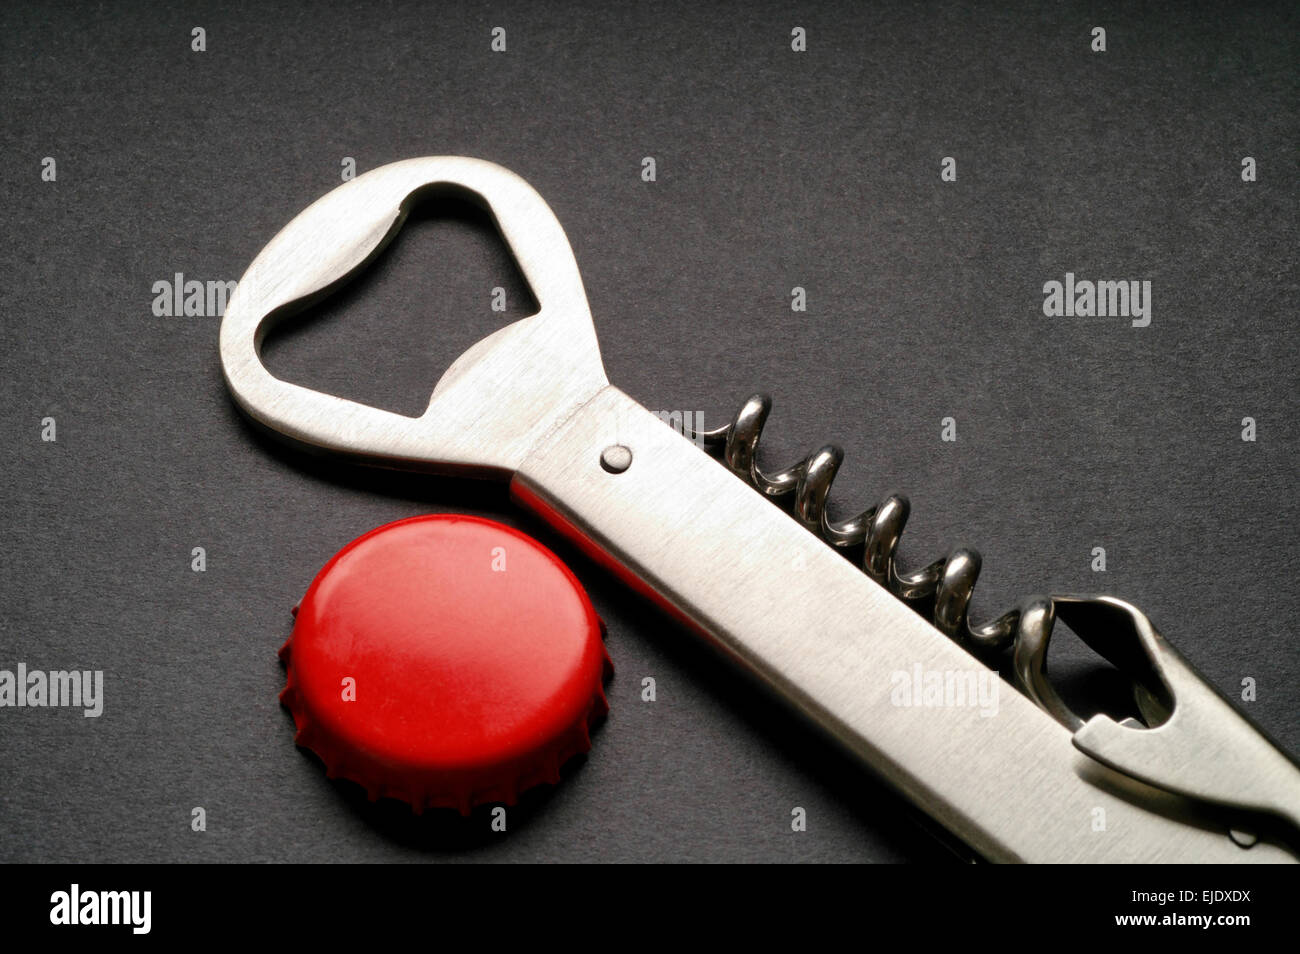 Steel corkscrew and bottle opener with red crown cap - Stock Image